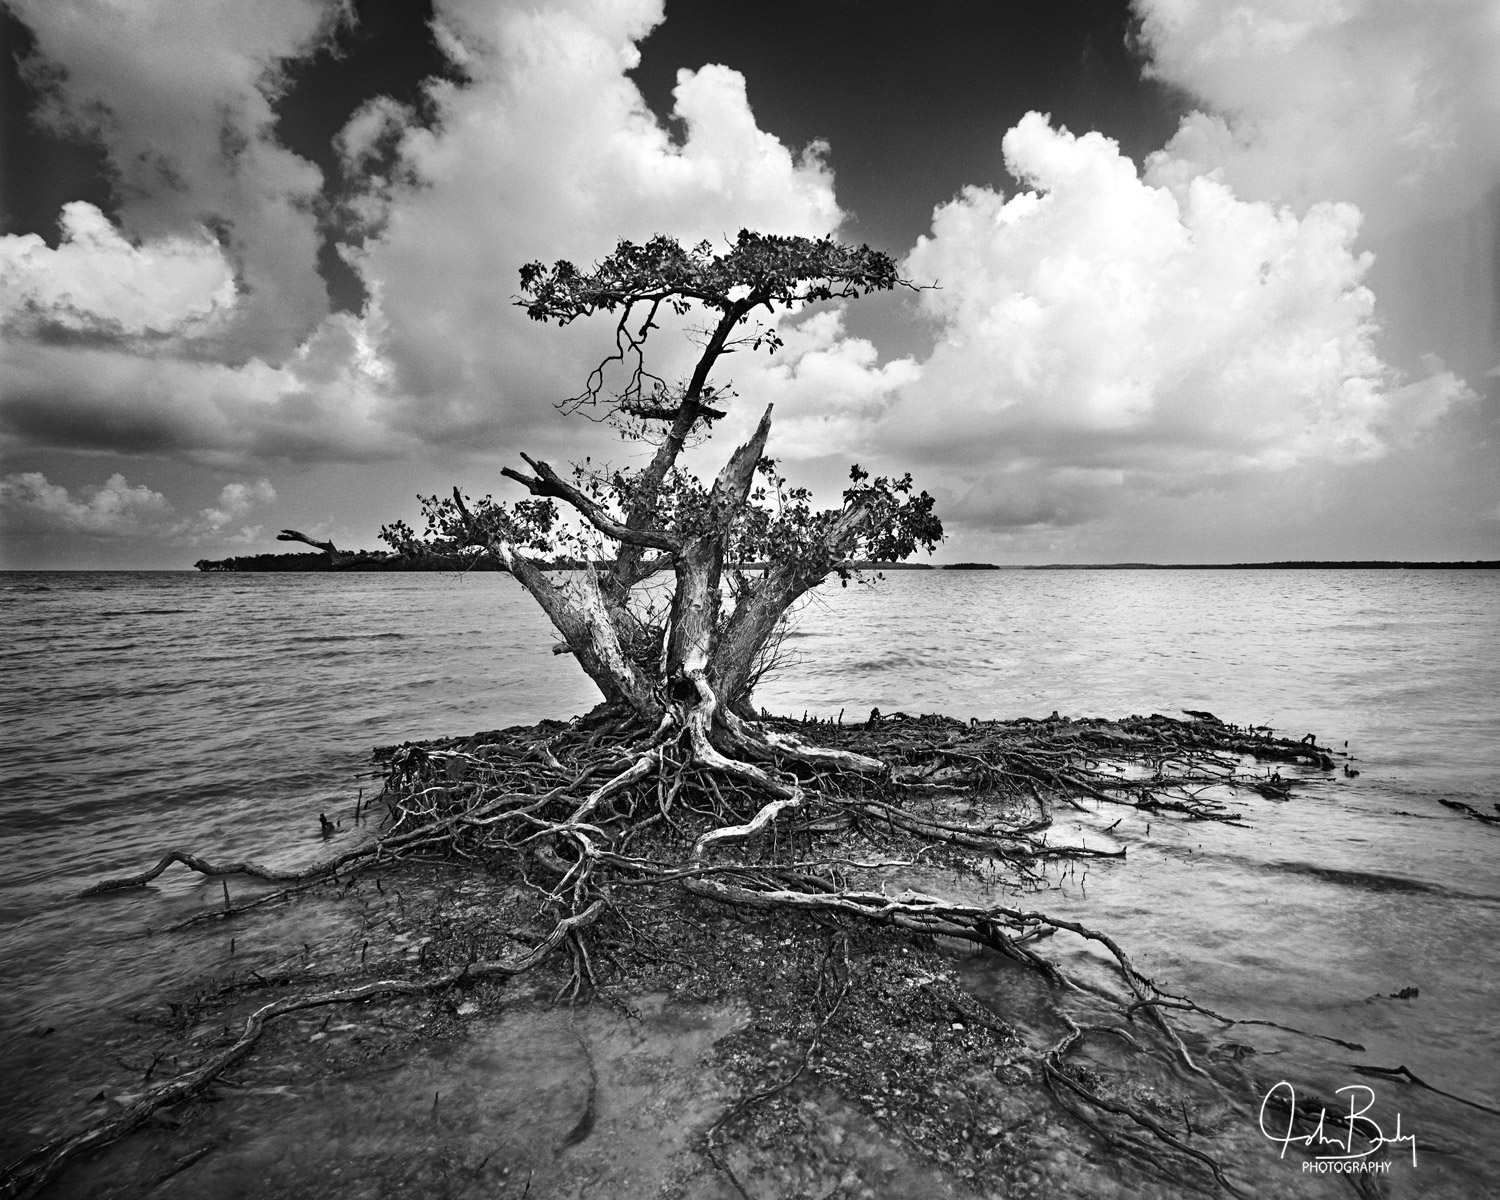 the ten thousand island national wildlife refuge, mangroves, everglades national park, jewel key, hog key, round key, turkey key, white horse key, rabbit key, demijohn key, dismal key, lost mans river